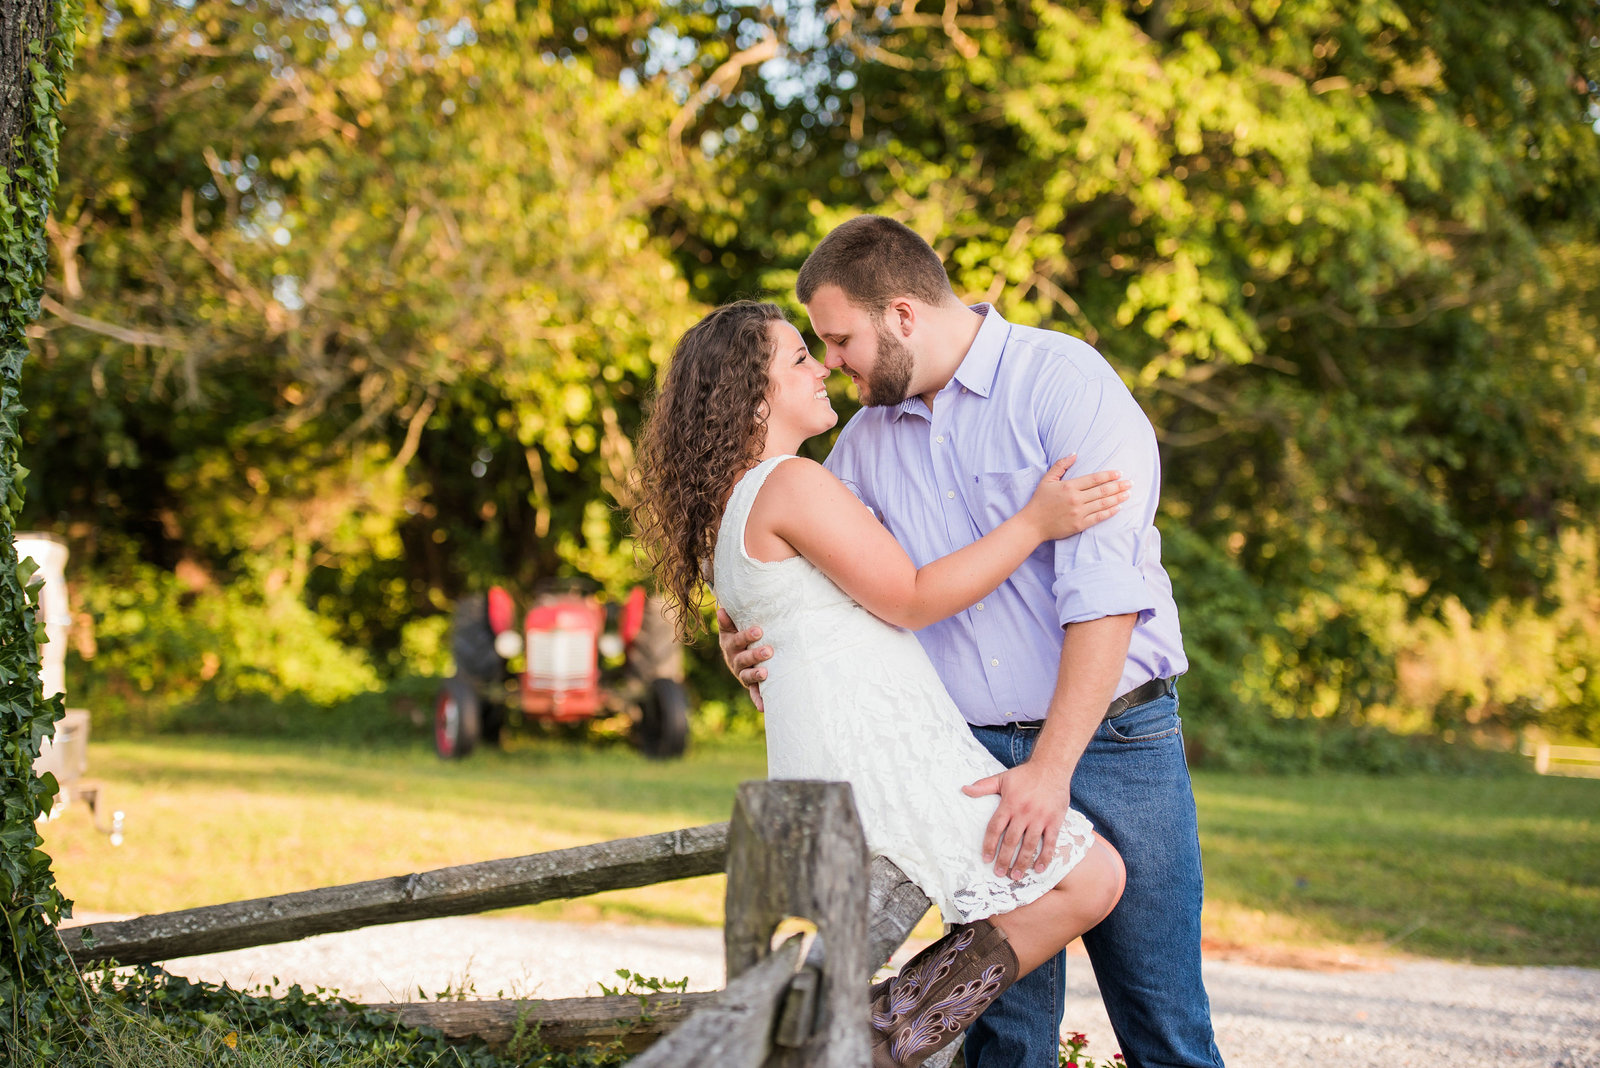 NJ_Rustic_Engagement_Photography058